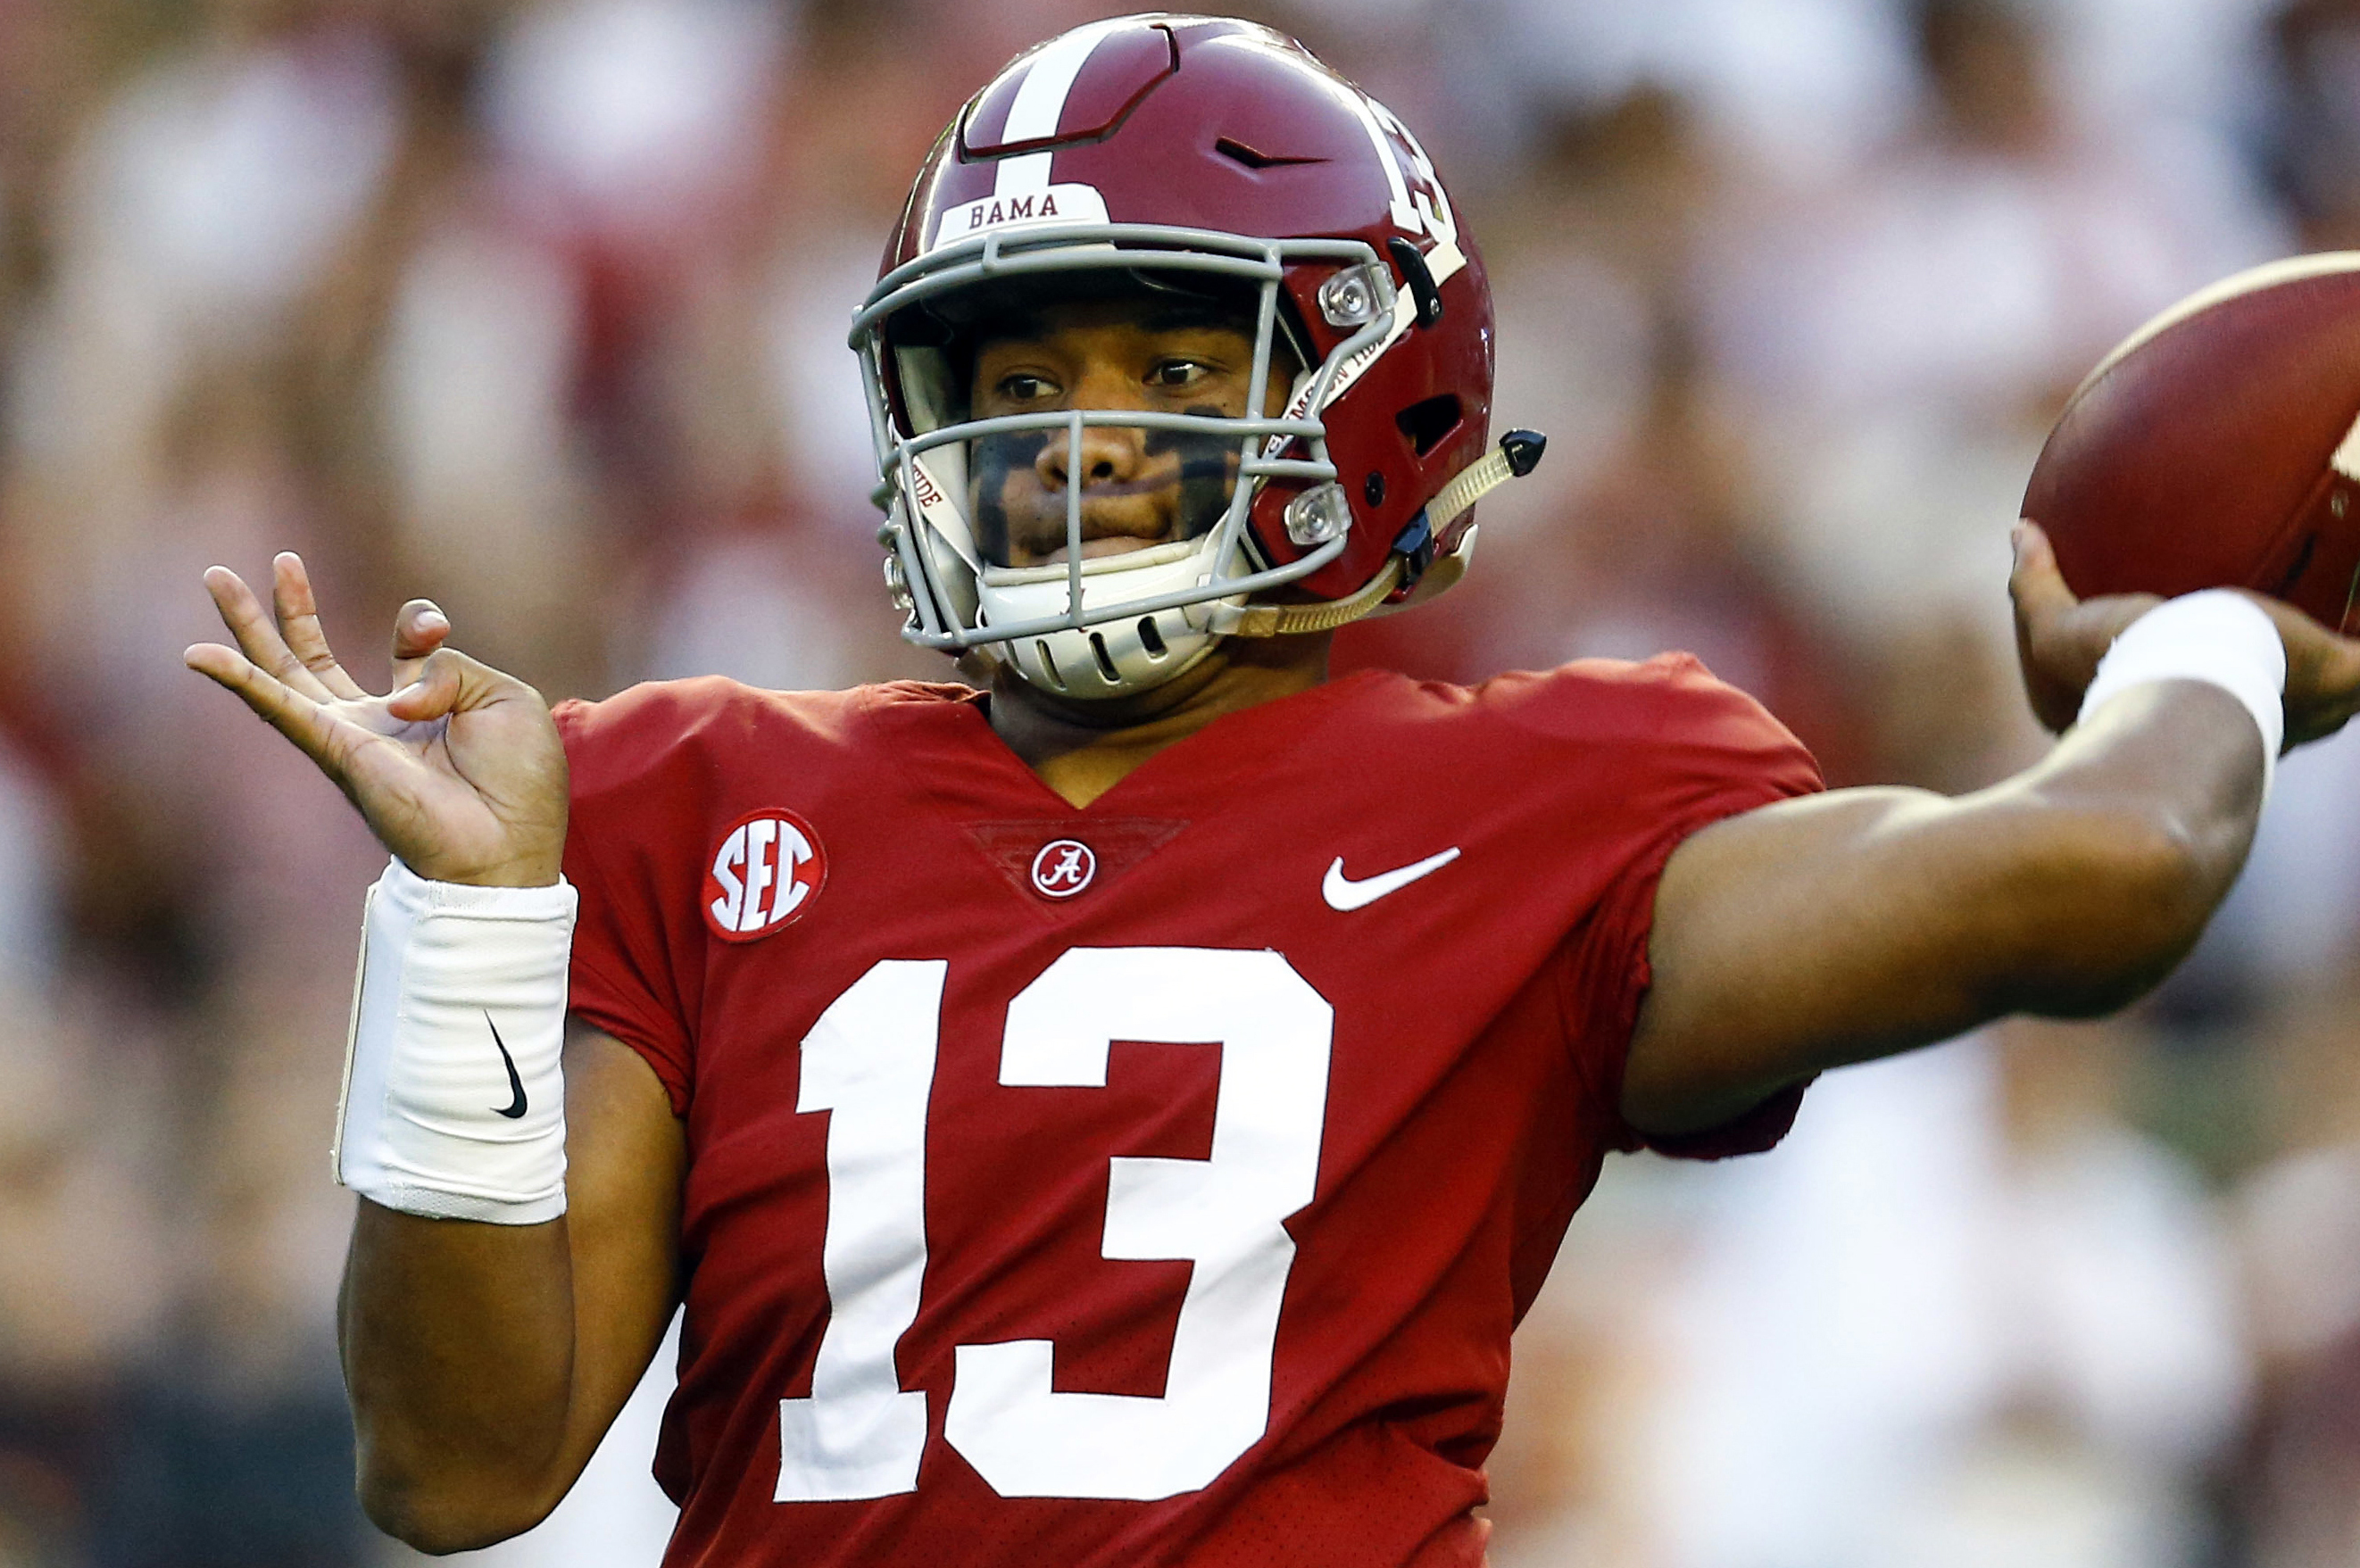 College football betting picks week 10 brother and sister bet on a week of blowjobs erotic story